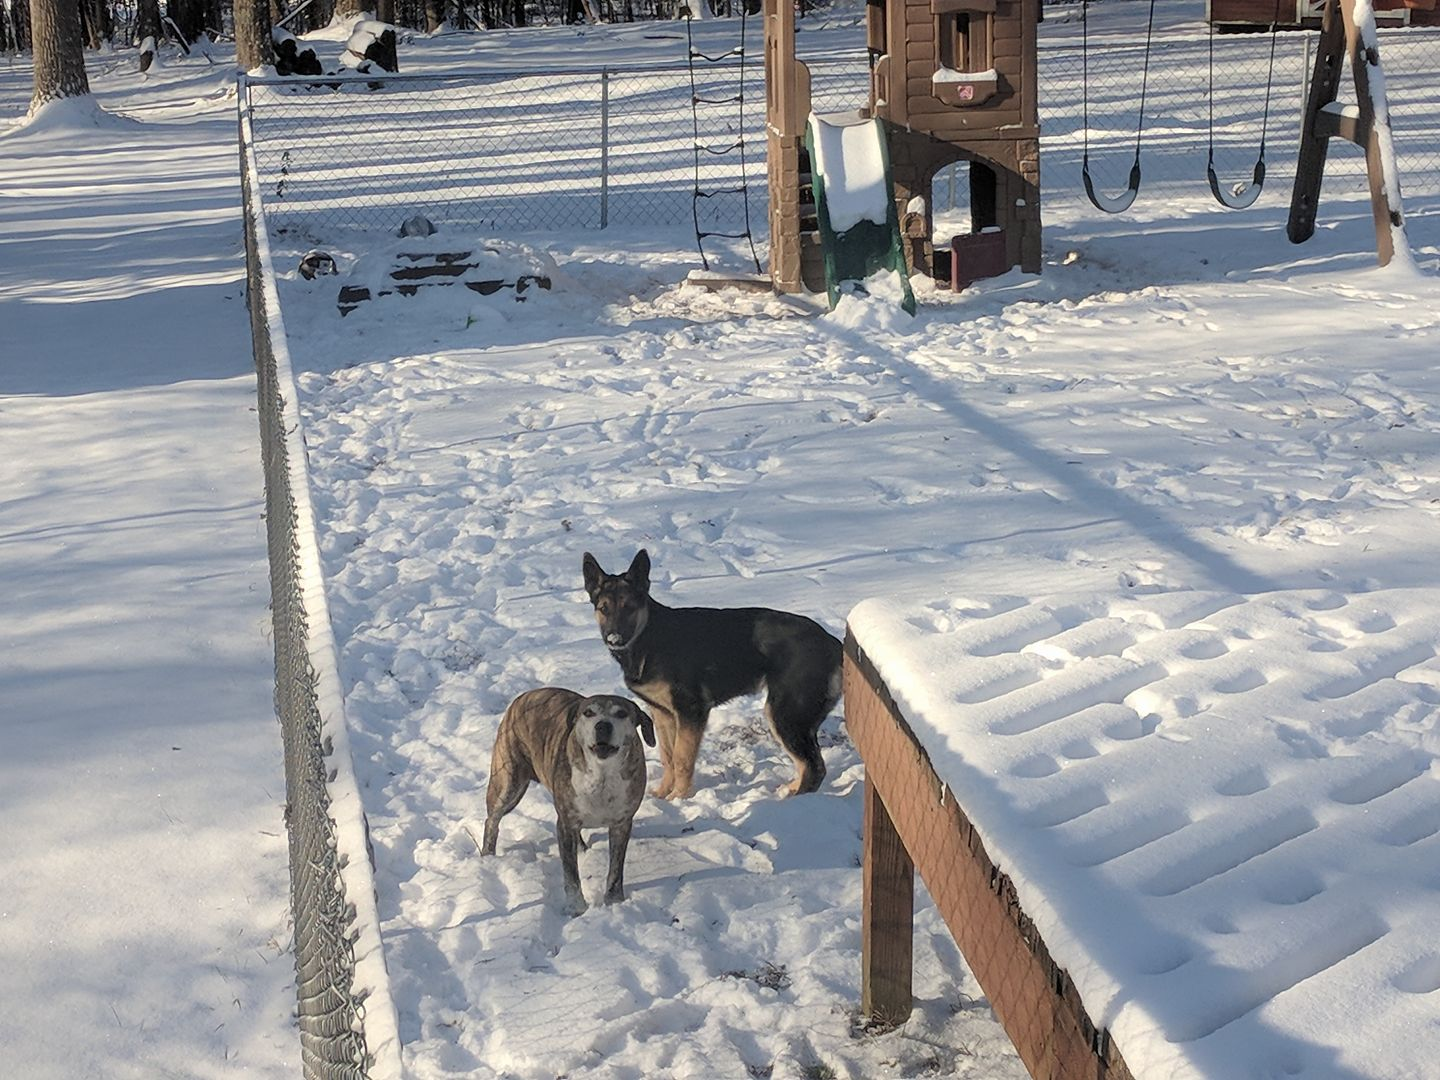 """<div class=""""meta image-caption""""><div class=""""origin-logo origin-image none""""><span>none</span></div><span class=""""caption-text"""">These dogs are ready for some snow fun (Credit: Kristy Gibson)</span></div>"""